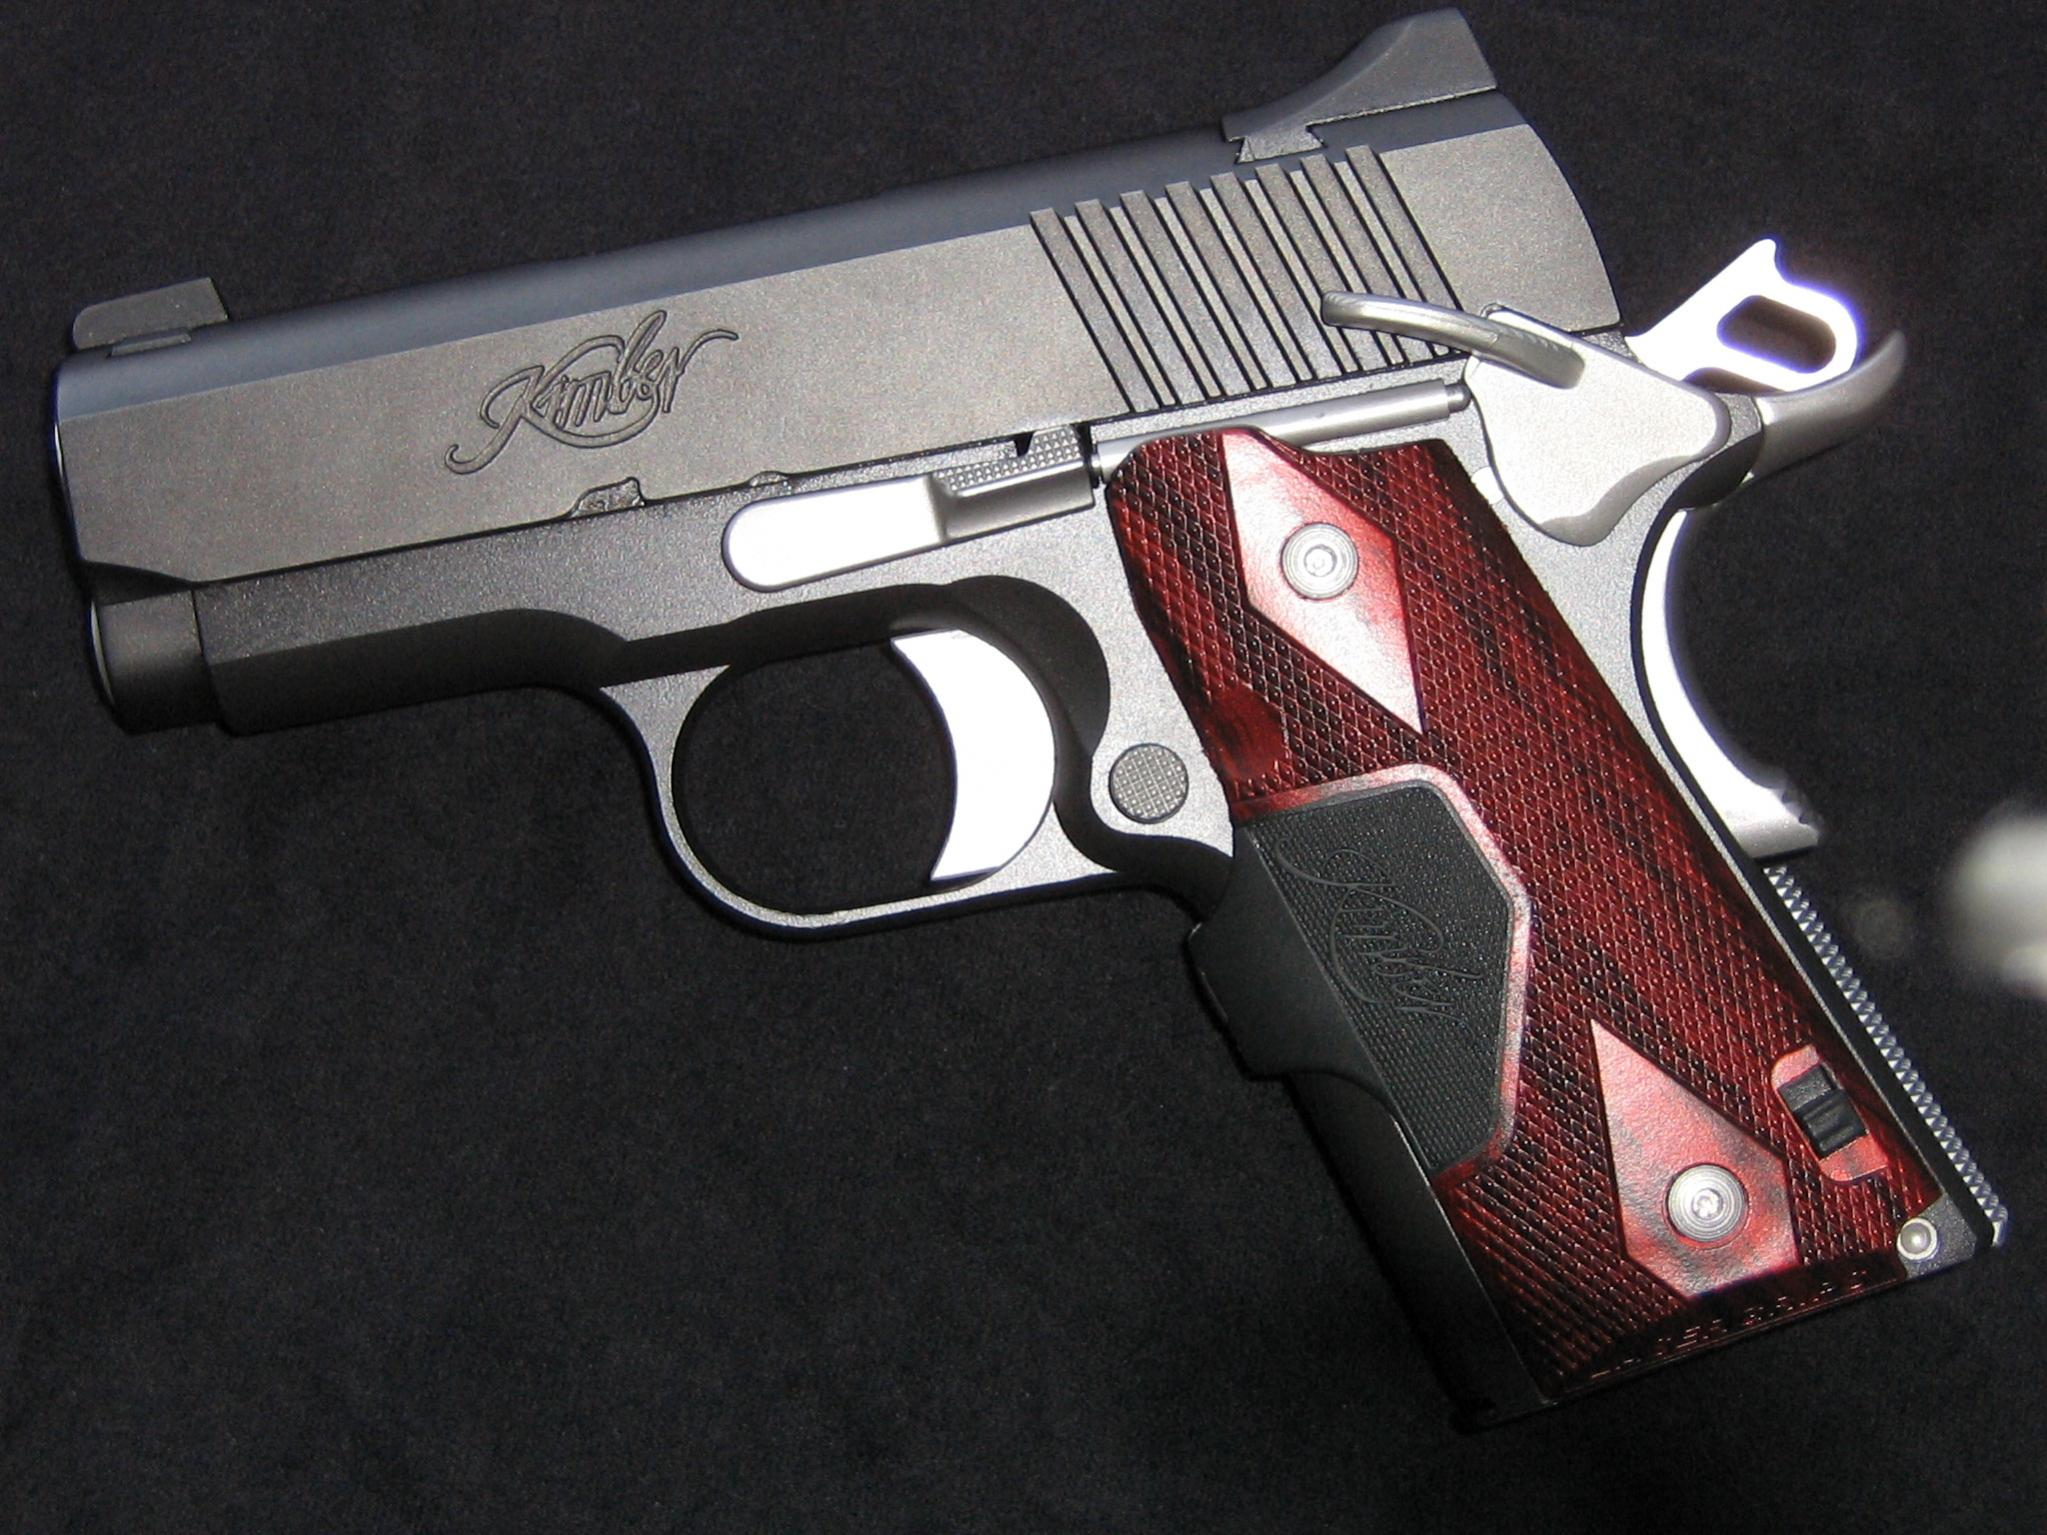 Pictures of my Kimber Ultra Carry II LG-img_0439.jpg